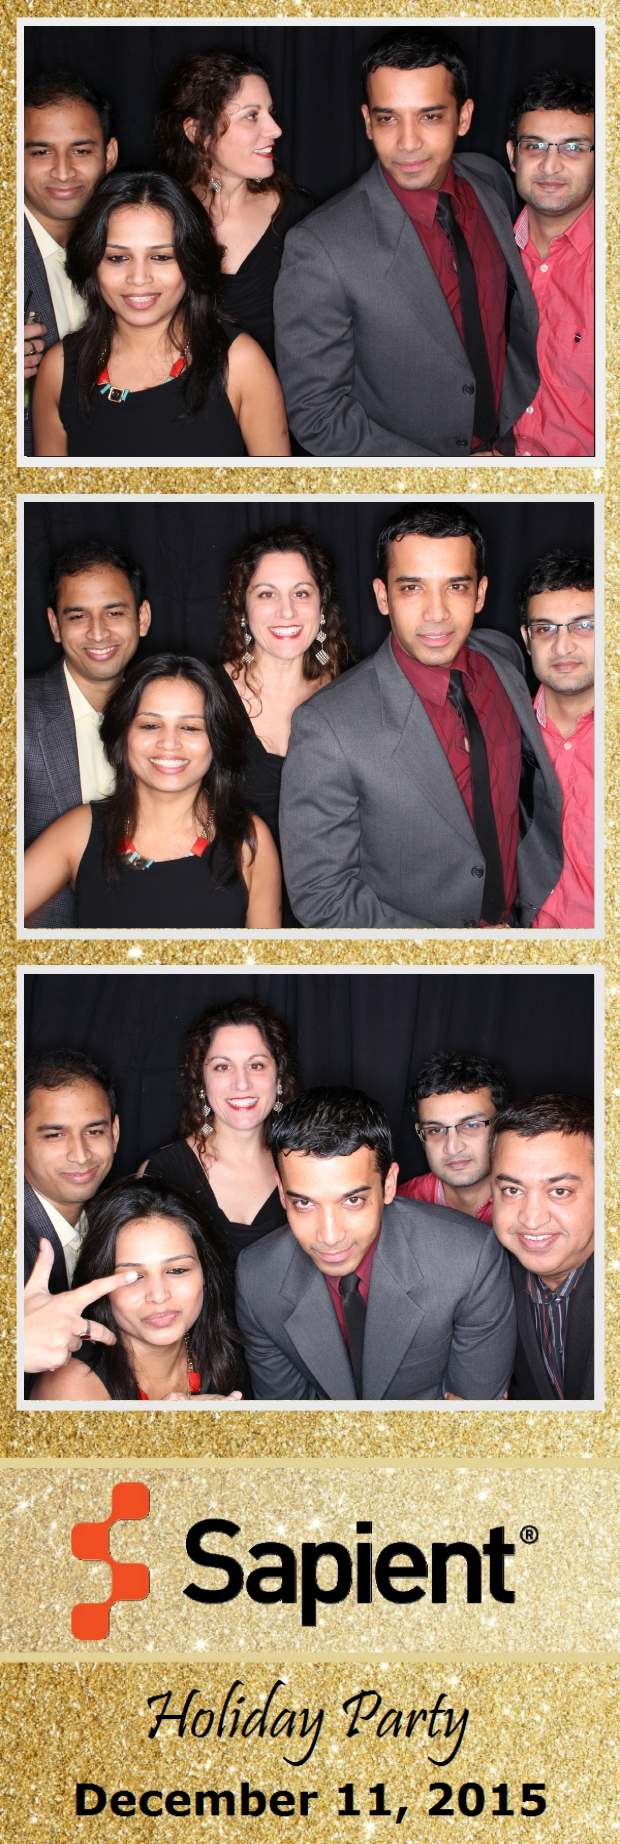 Guest House Events Photo Booth Sapient Holiday Party (9).jpg